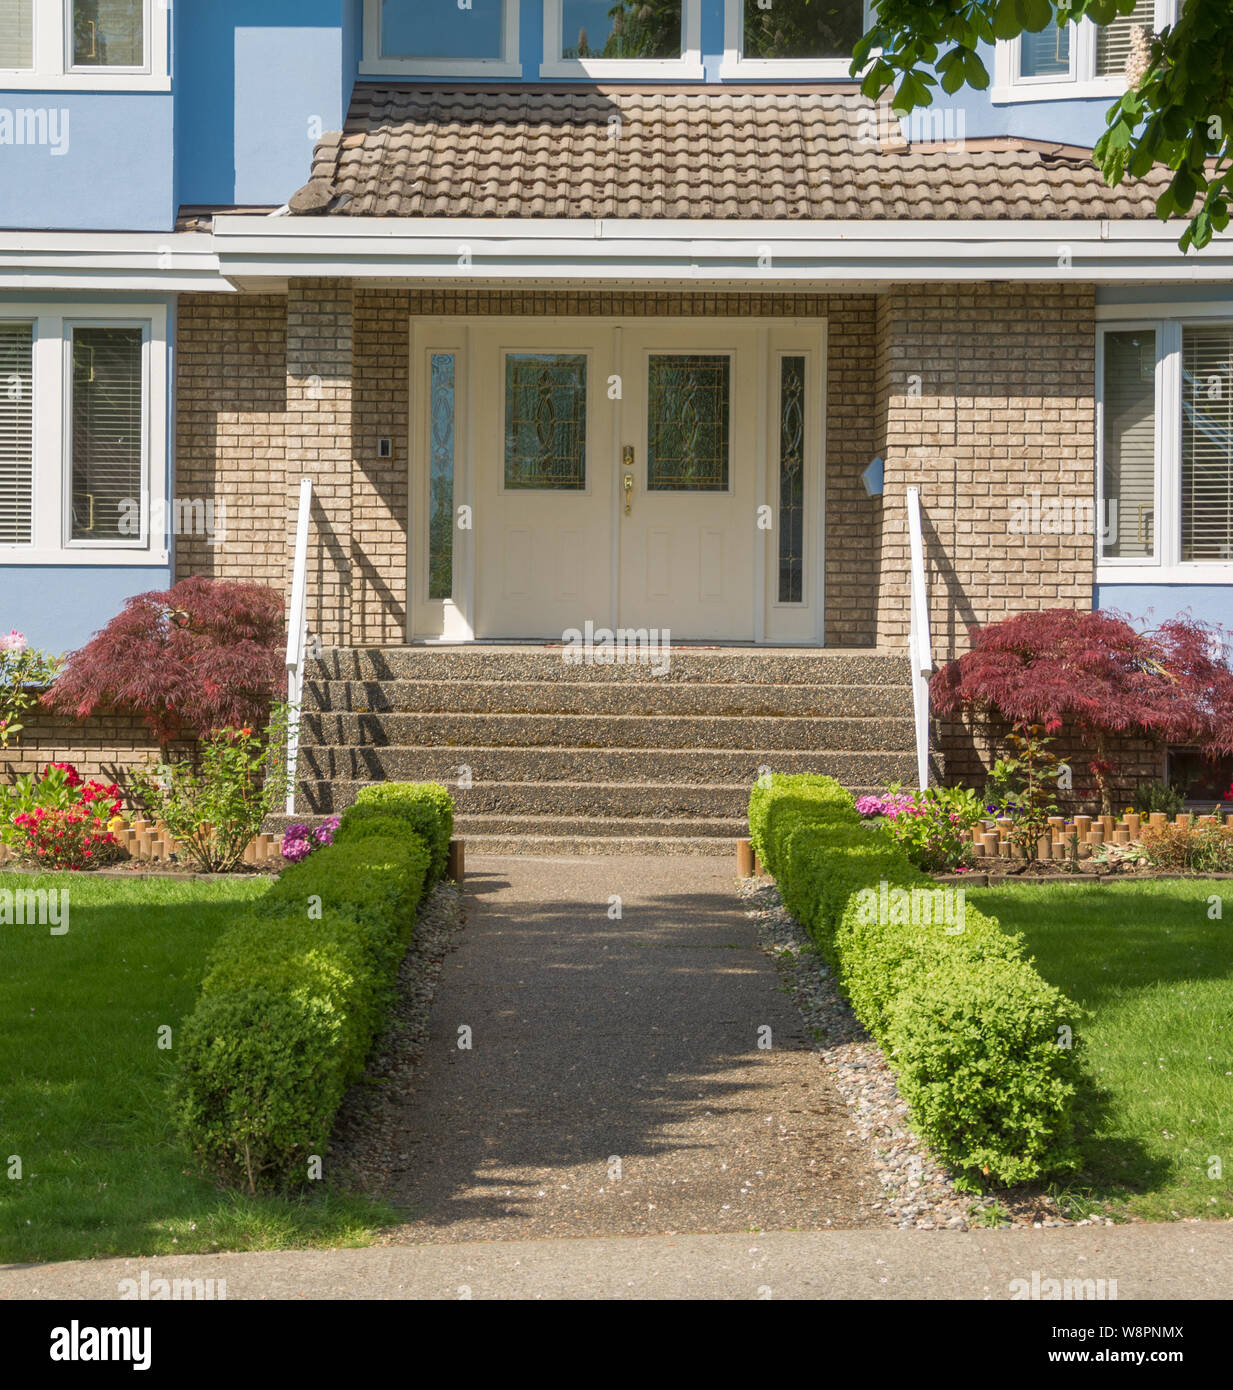 Entrance of family house with small hedges on sides in suburban area Stock Photo